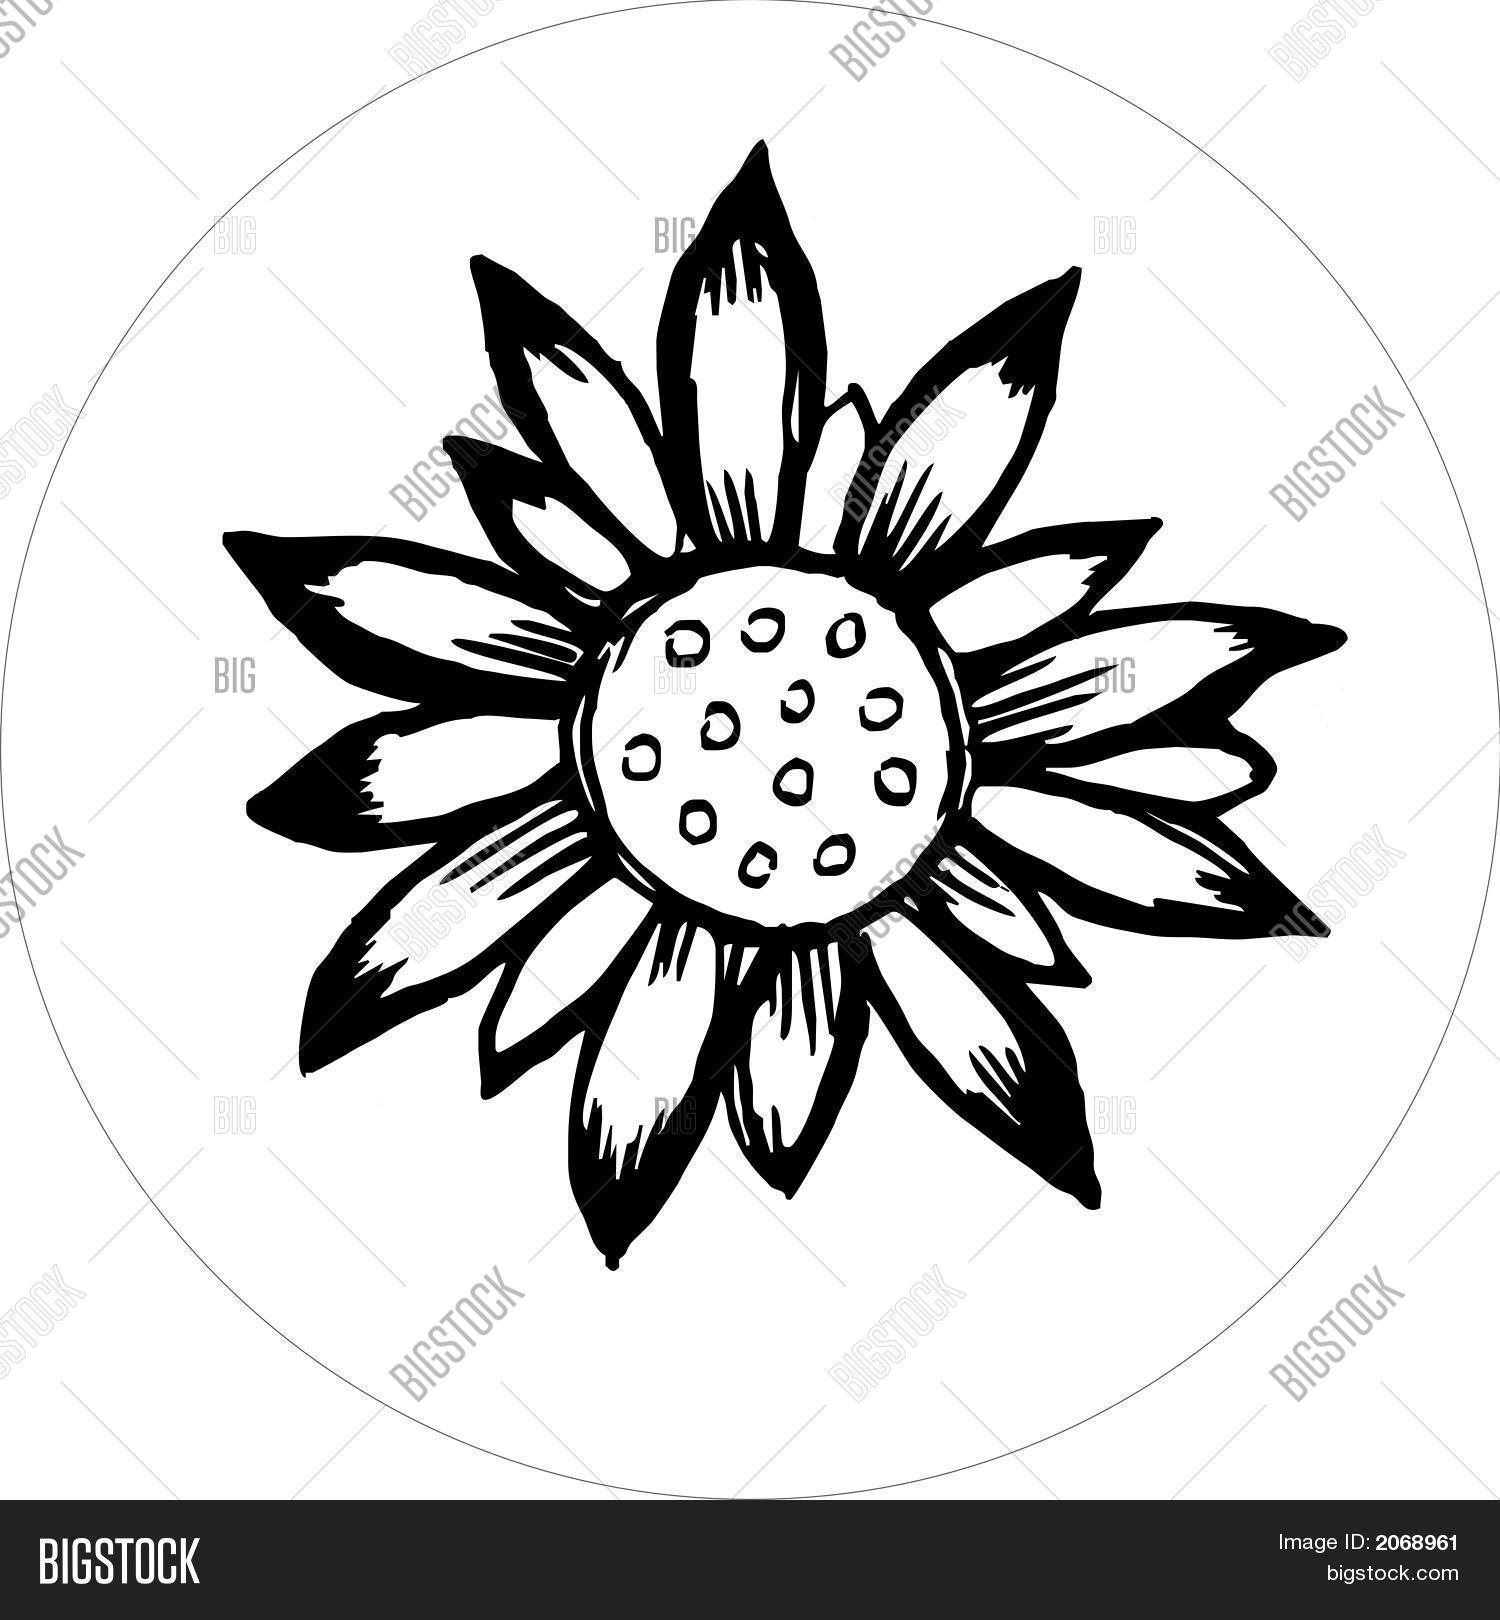 Uncategorized How To Draw Big Flowers flower draw black white eps vector photo bigstock and eps